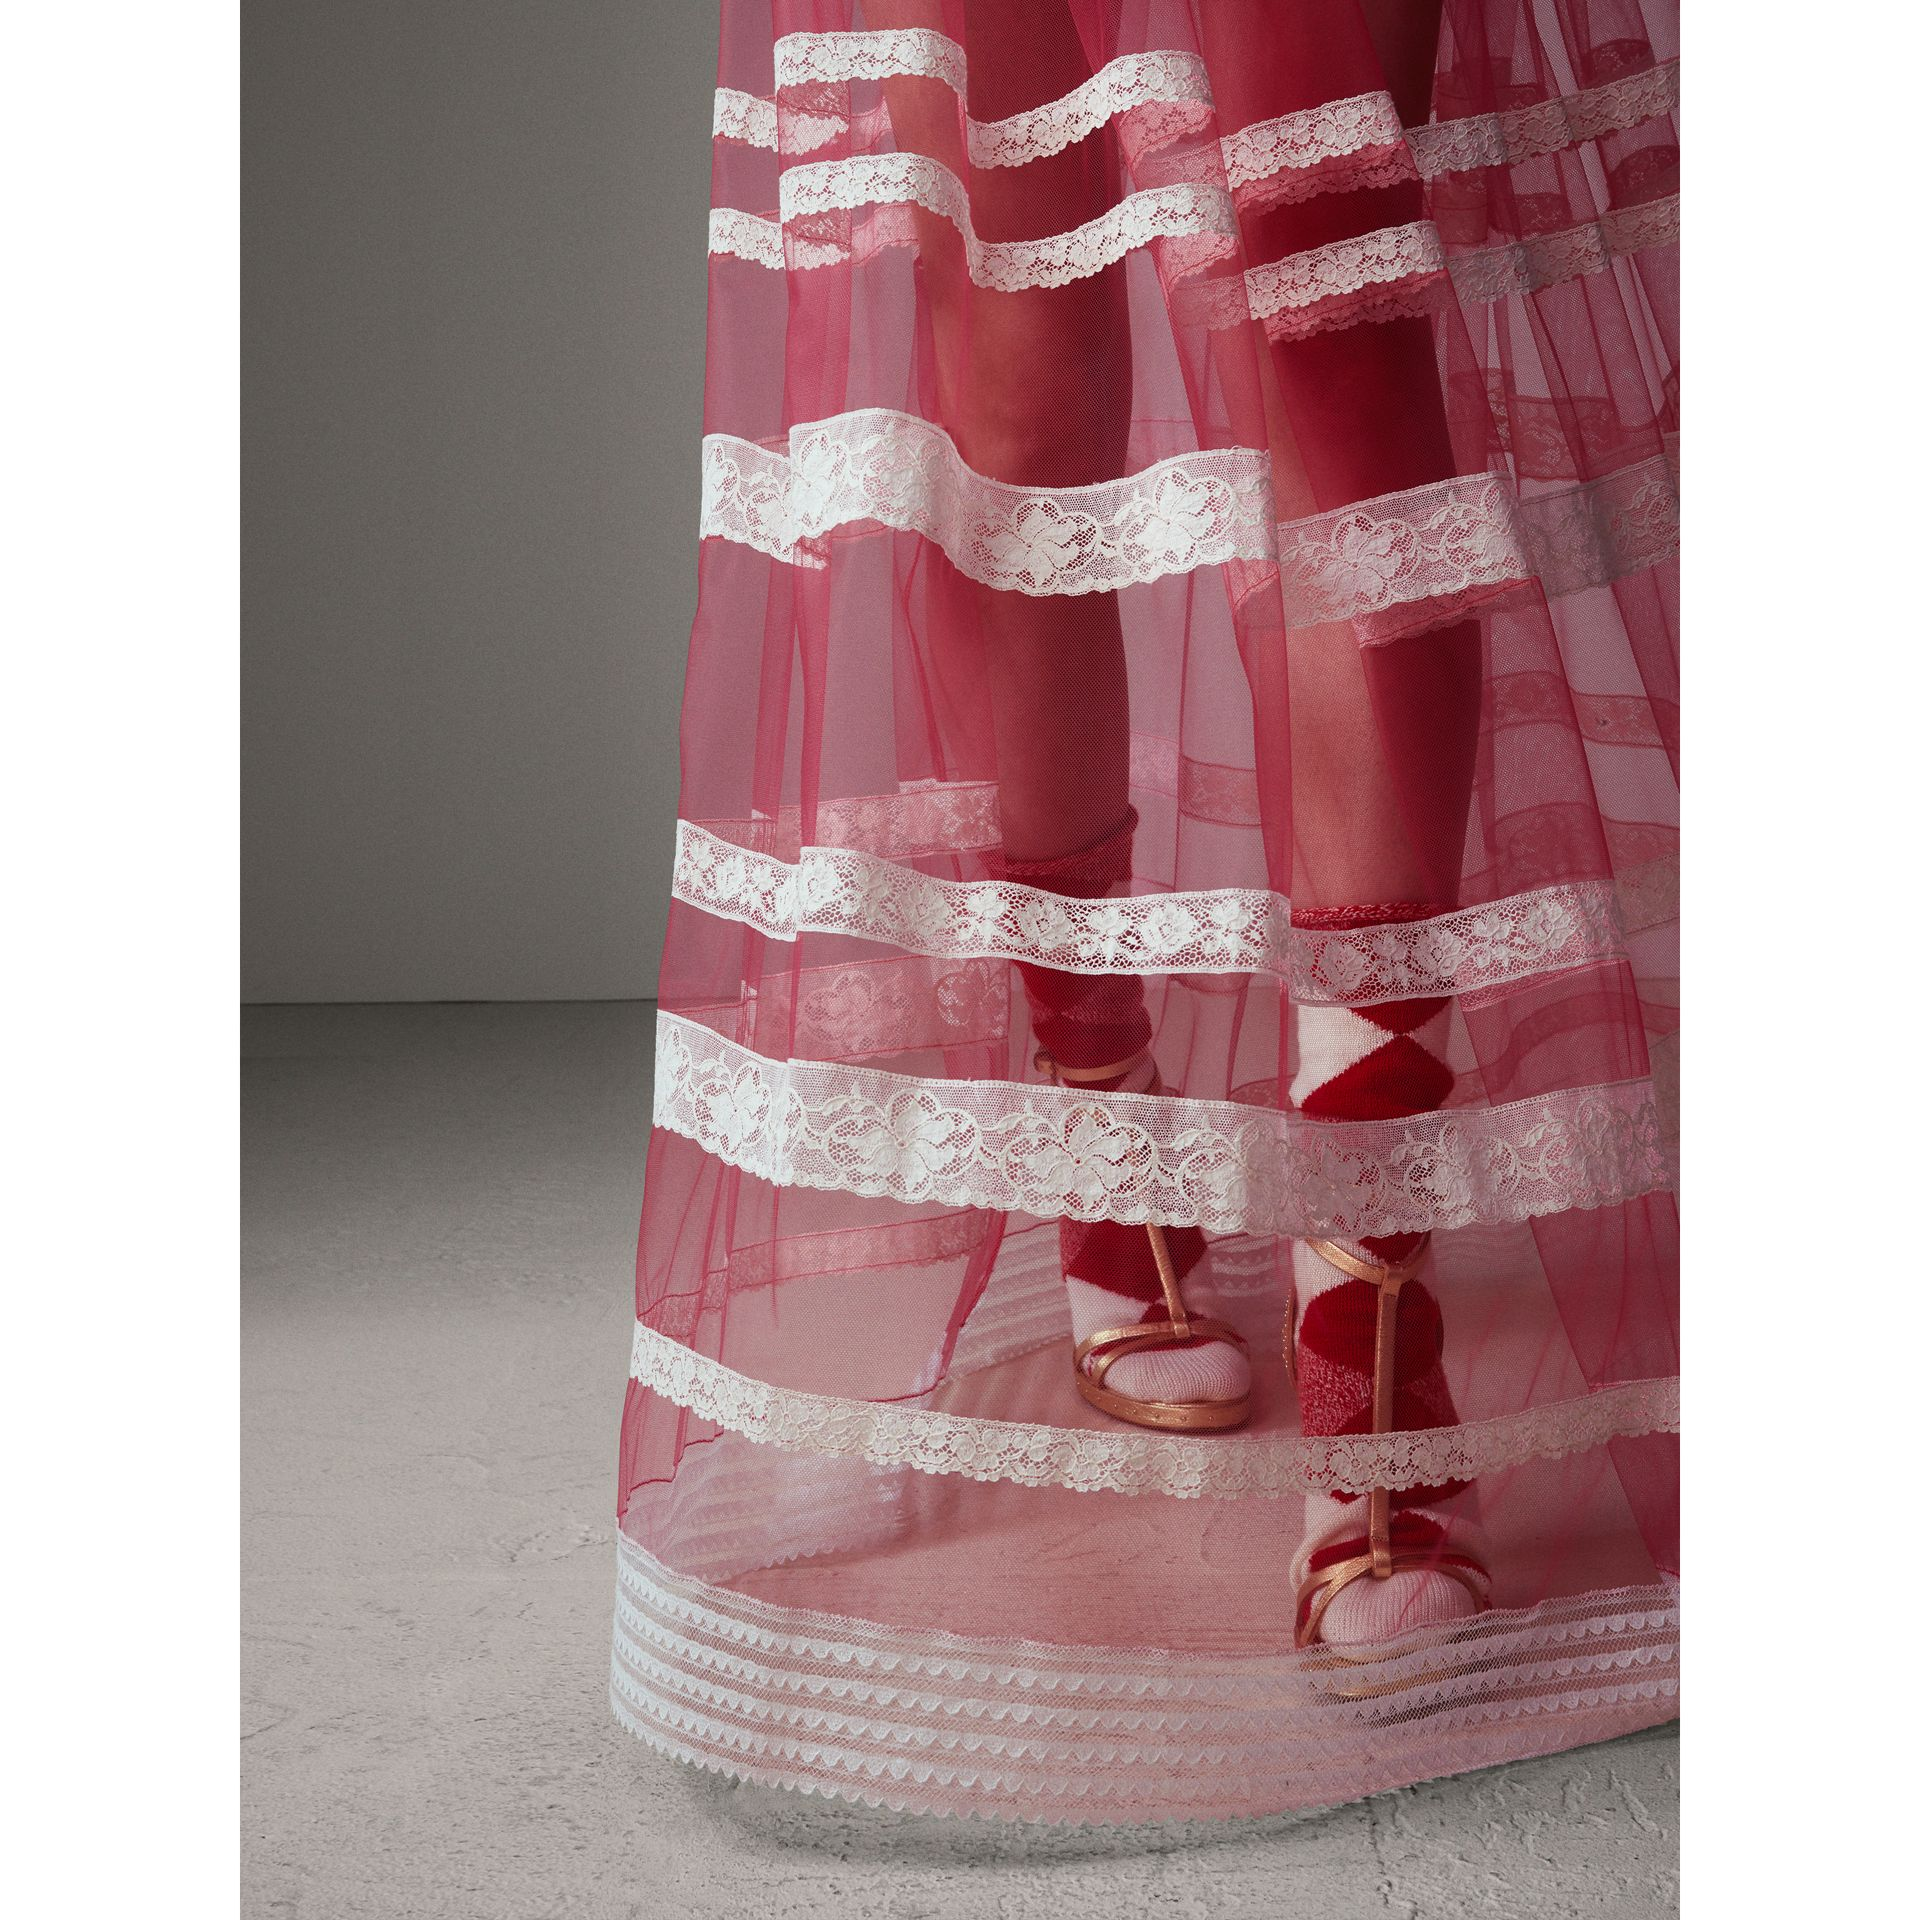 Floor-length English Lace Trim Tulle Skirt in Bright Pink - Women | Burberry Singapore - gallery image 5